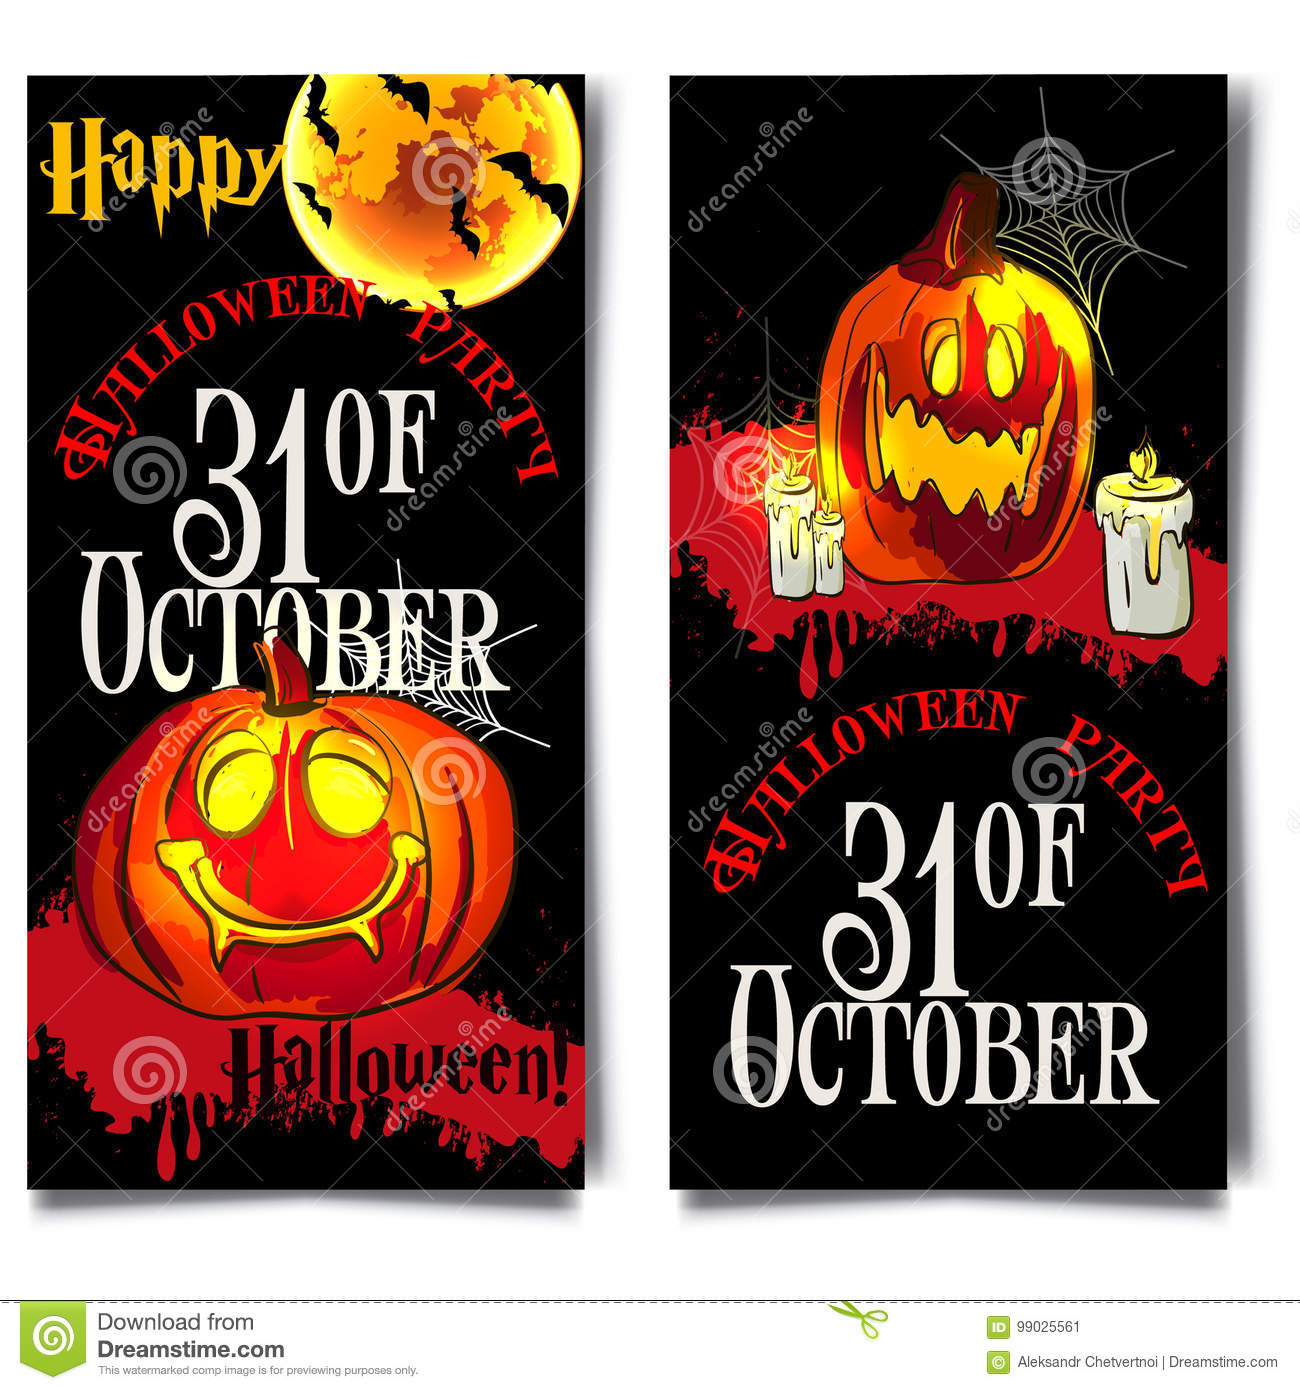 Halloween Vertical Background With Pumpkin Flyer Or Invitation Template For Party Vector Illustration